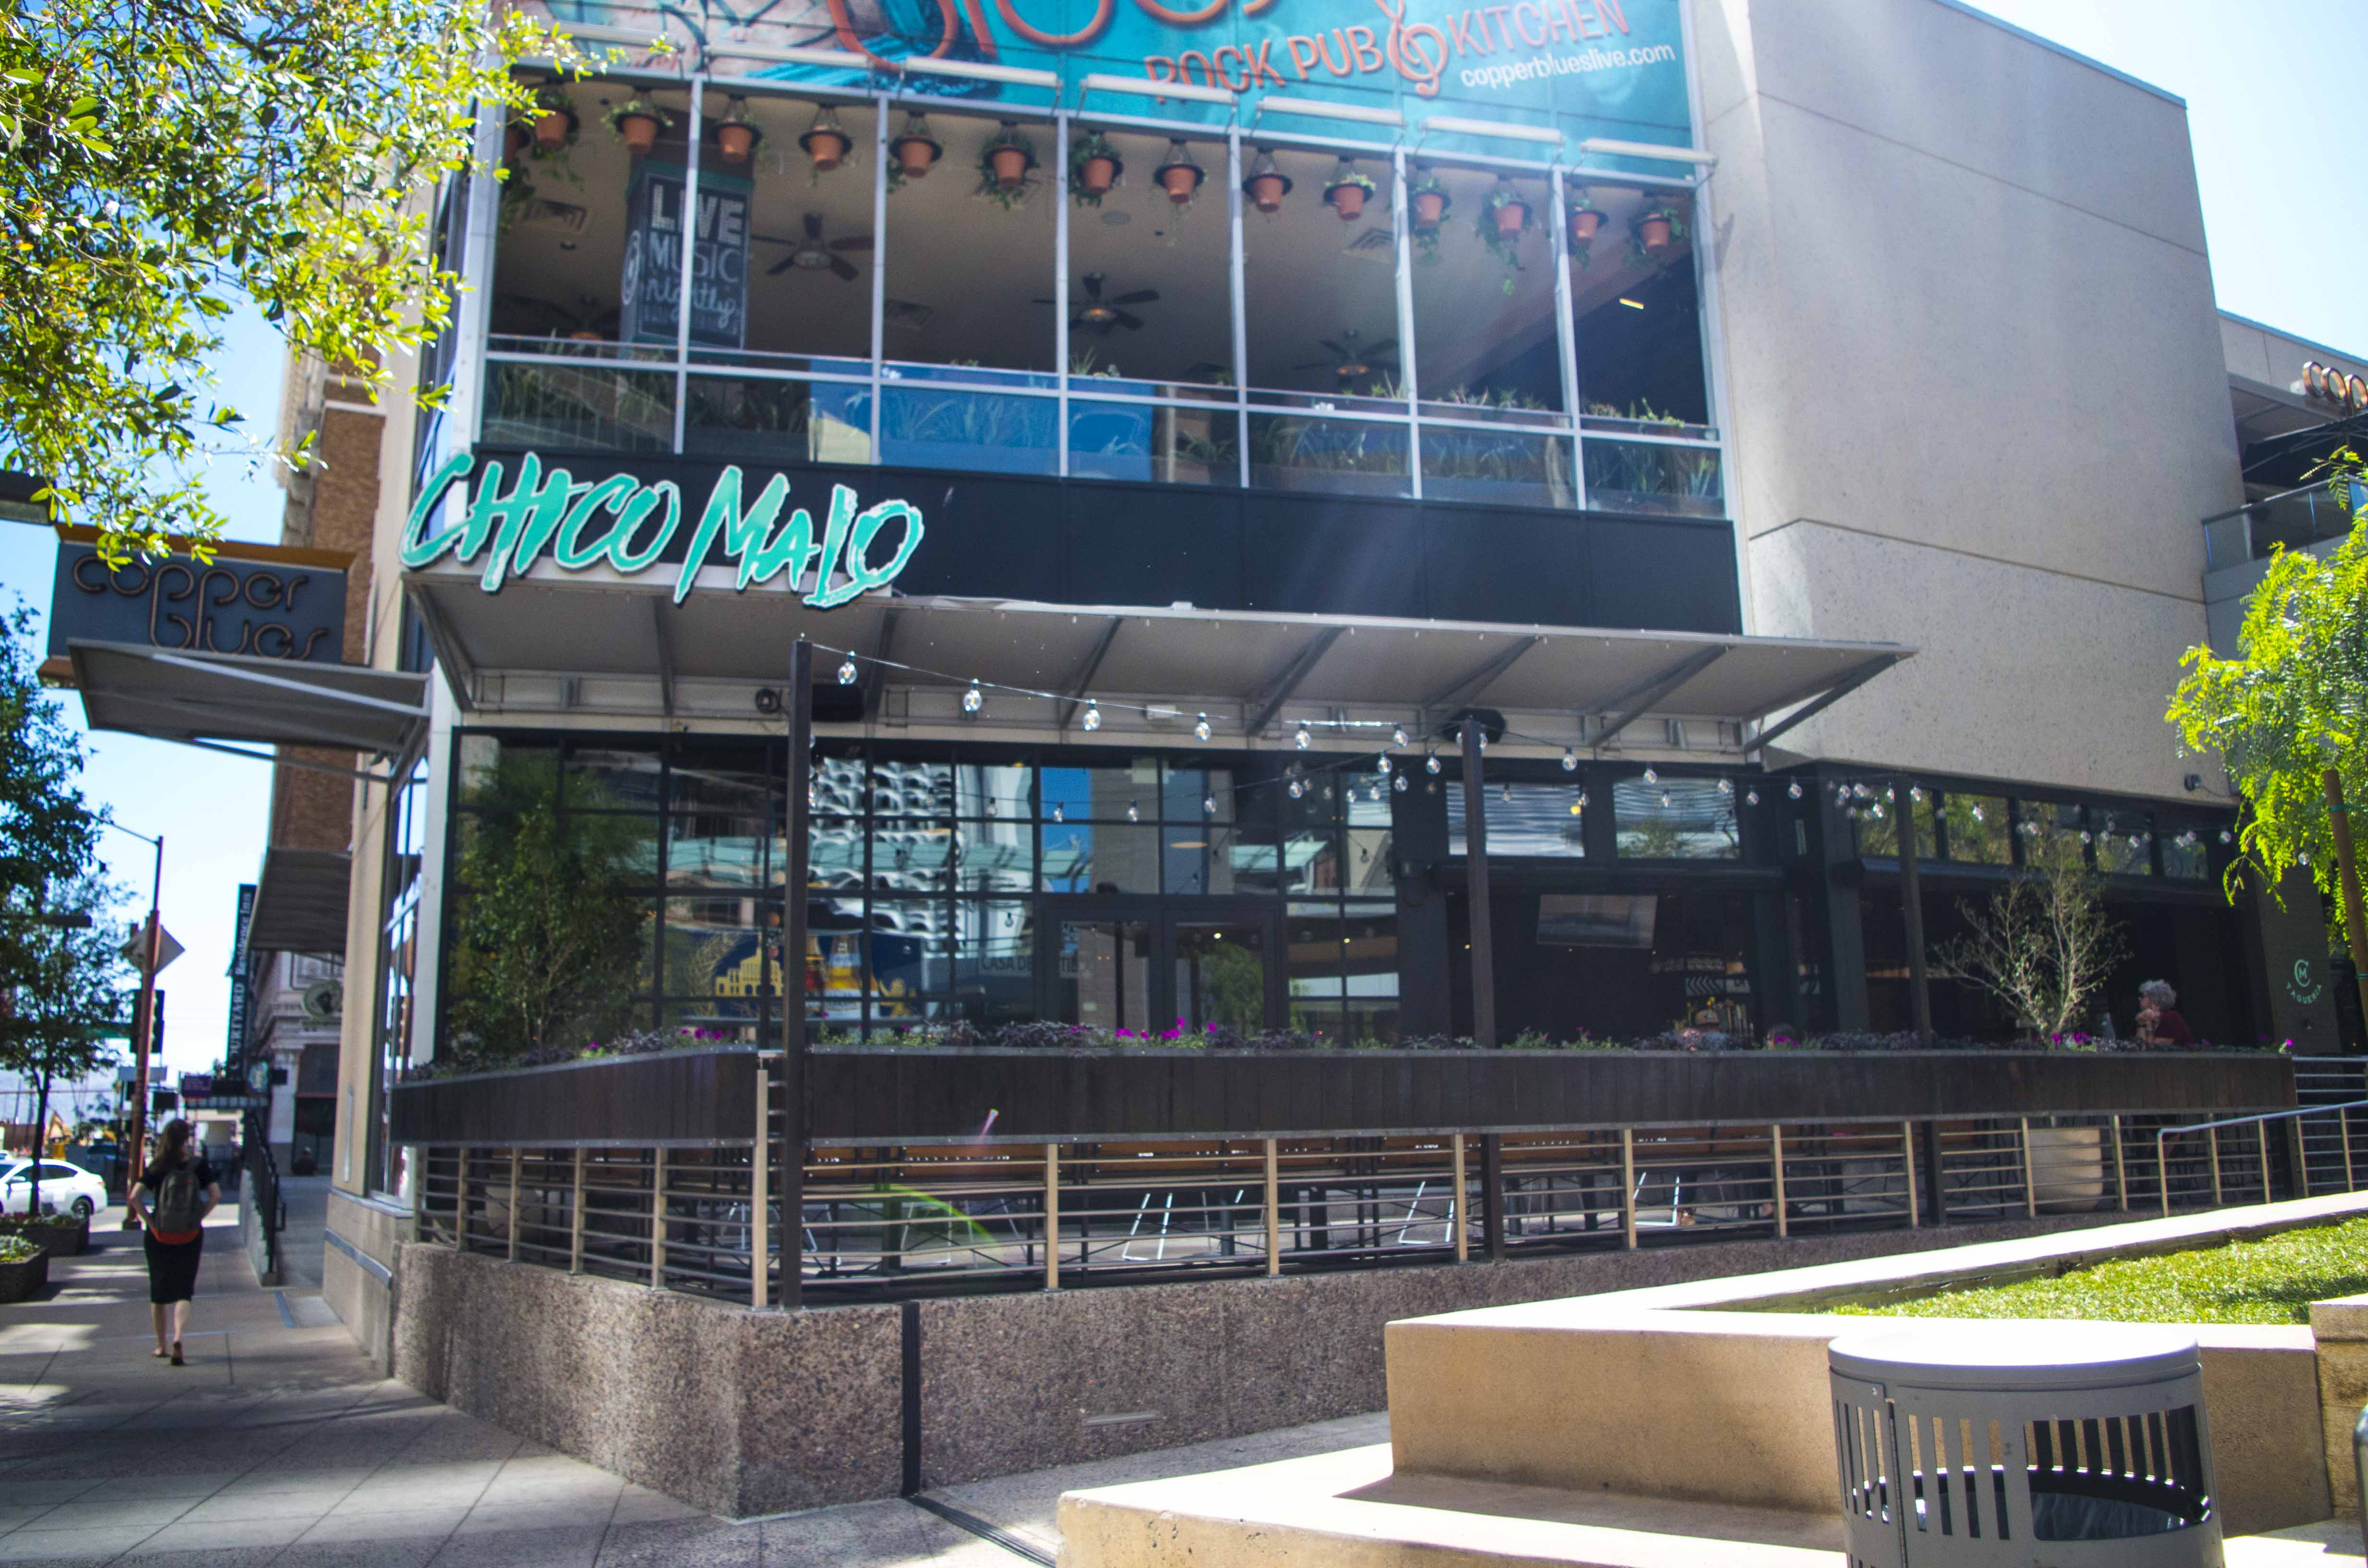 Here's Why You Need to Try Chico Malo in Downtown Phoenix - Downtown Phoenix Inc.